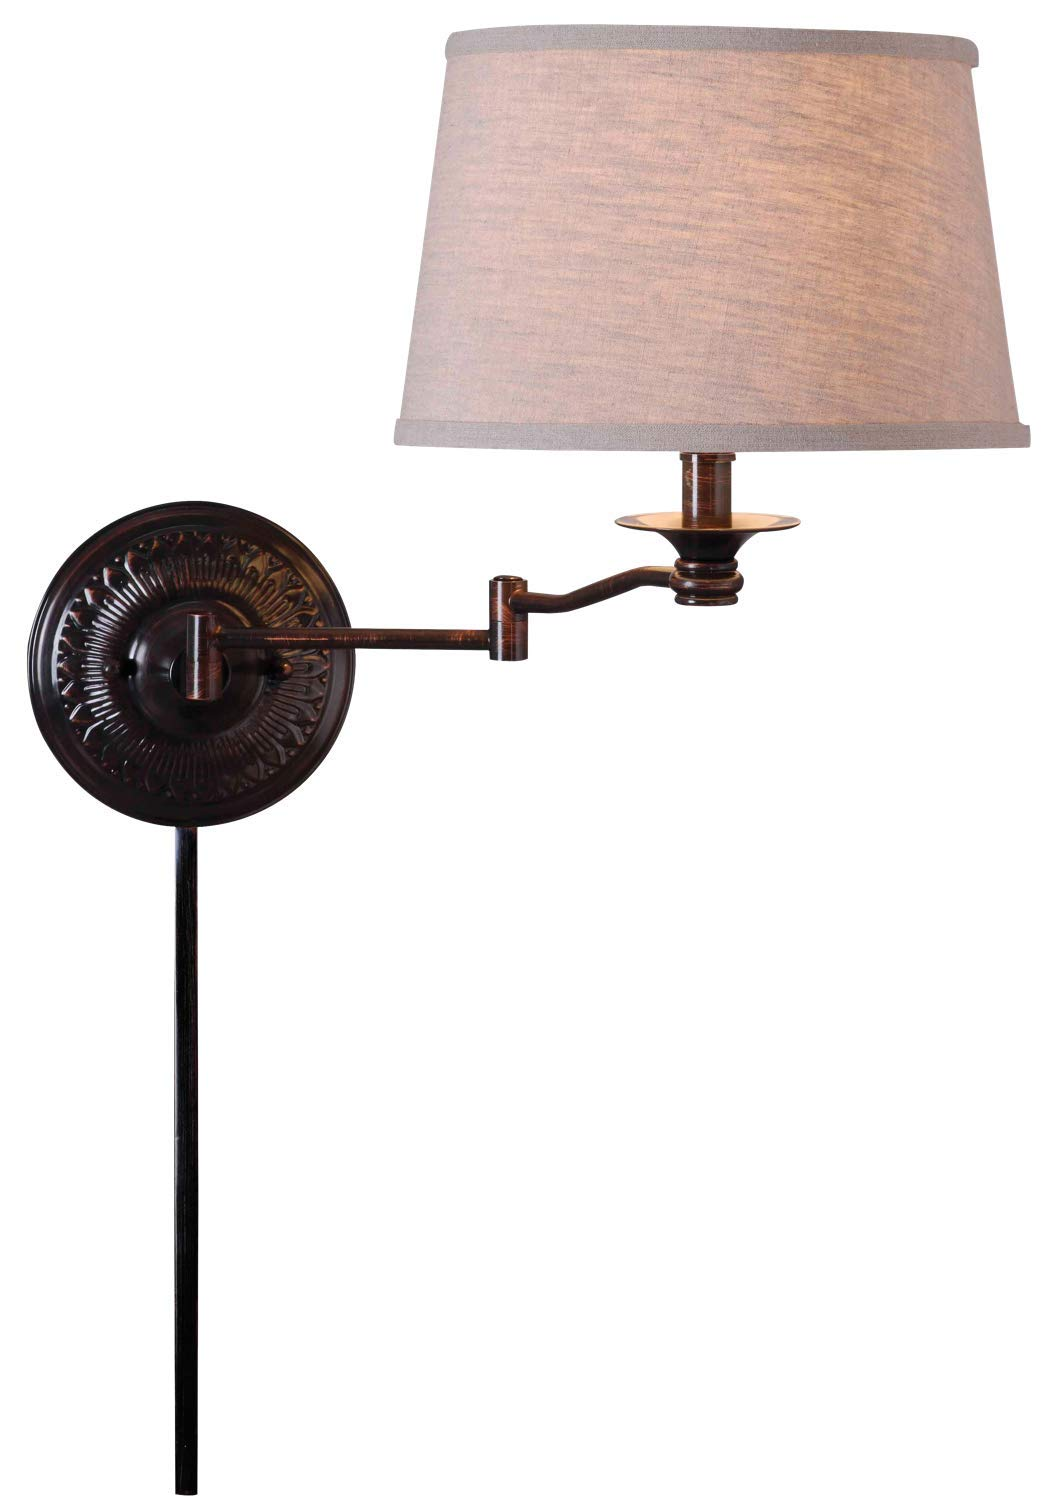 "Kenroy Home 32217CBZ Riverside Wall Swing Arm Lamp, 12"" x 12"" x 17"", Copper Bronze Finish"